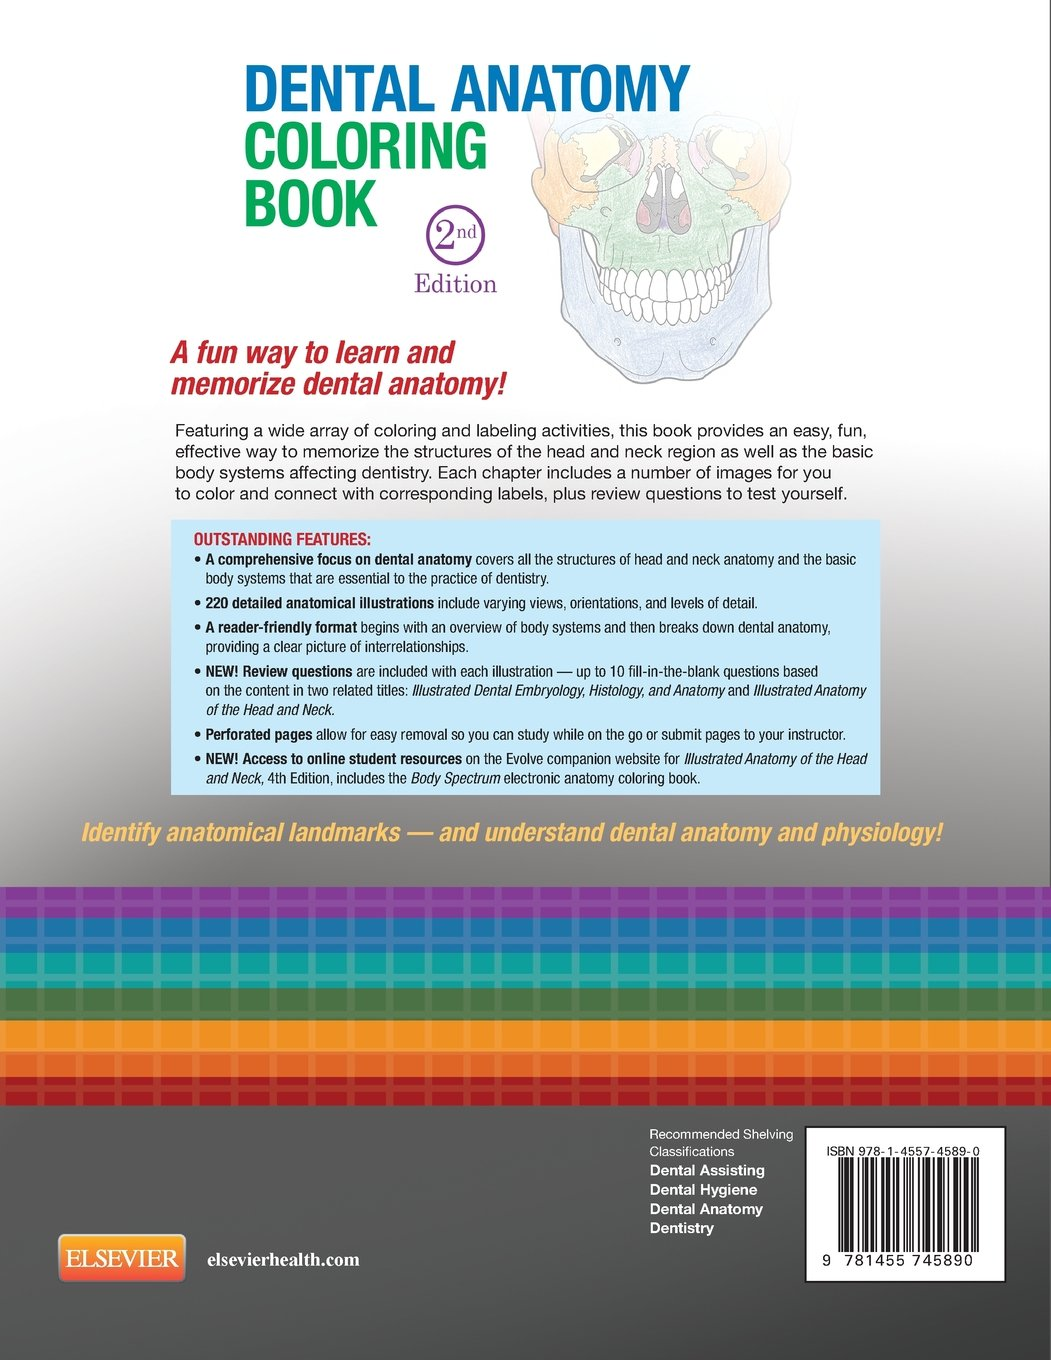 Dental Anatomy Coloring Book: Amazon.co.uk: Margaret J. Fehrenbach ...